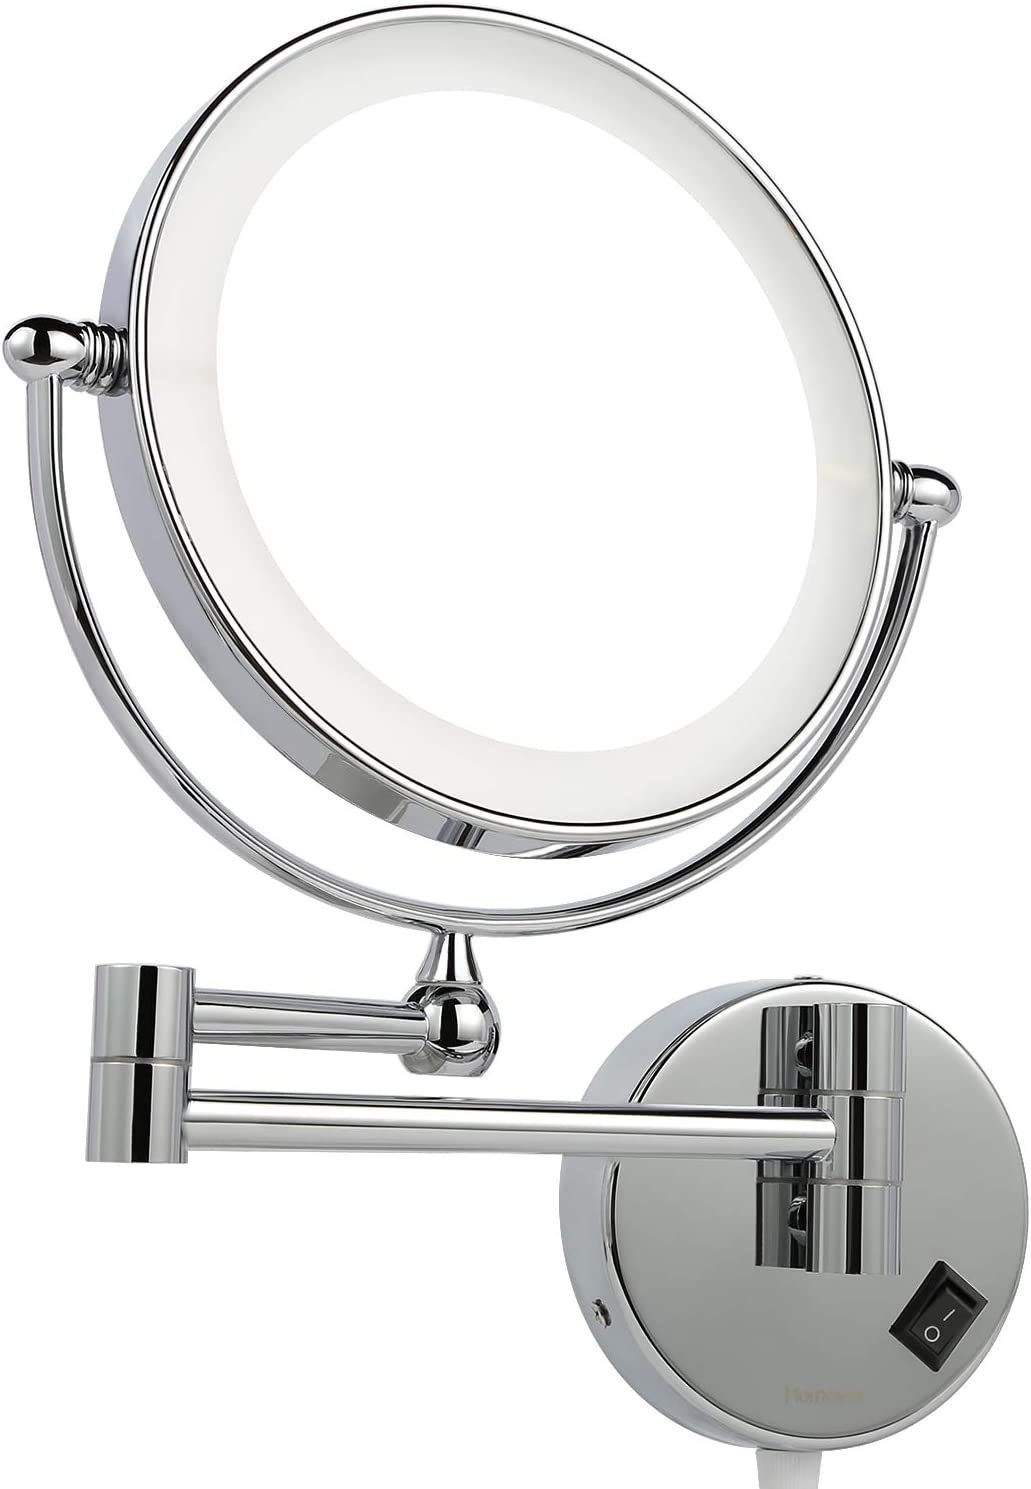 Homever Wall Mounted Makeup Mirror LED Lighted with 1x/5x Magnification, Round Shaped Double-Sided, 360° Free Rotation, Extendable and Chrome Finished for Bathroom, Spa and Hotel